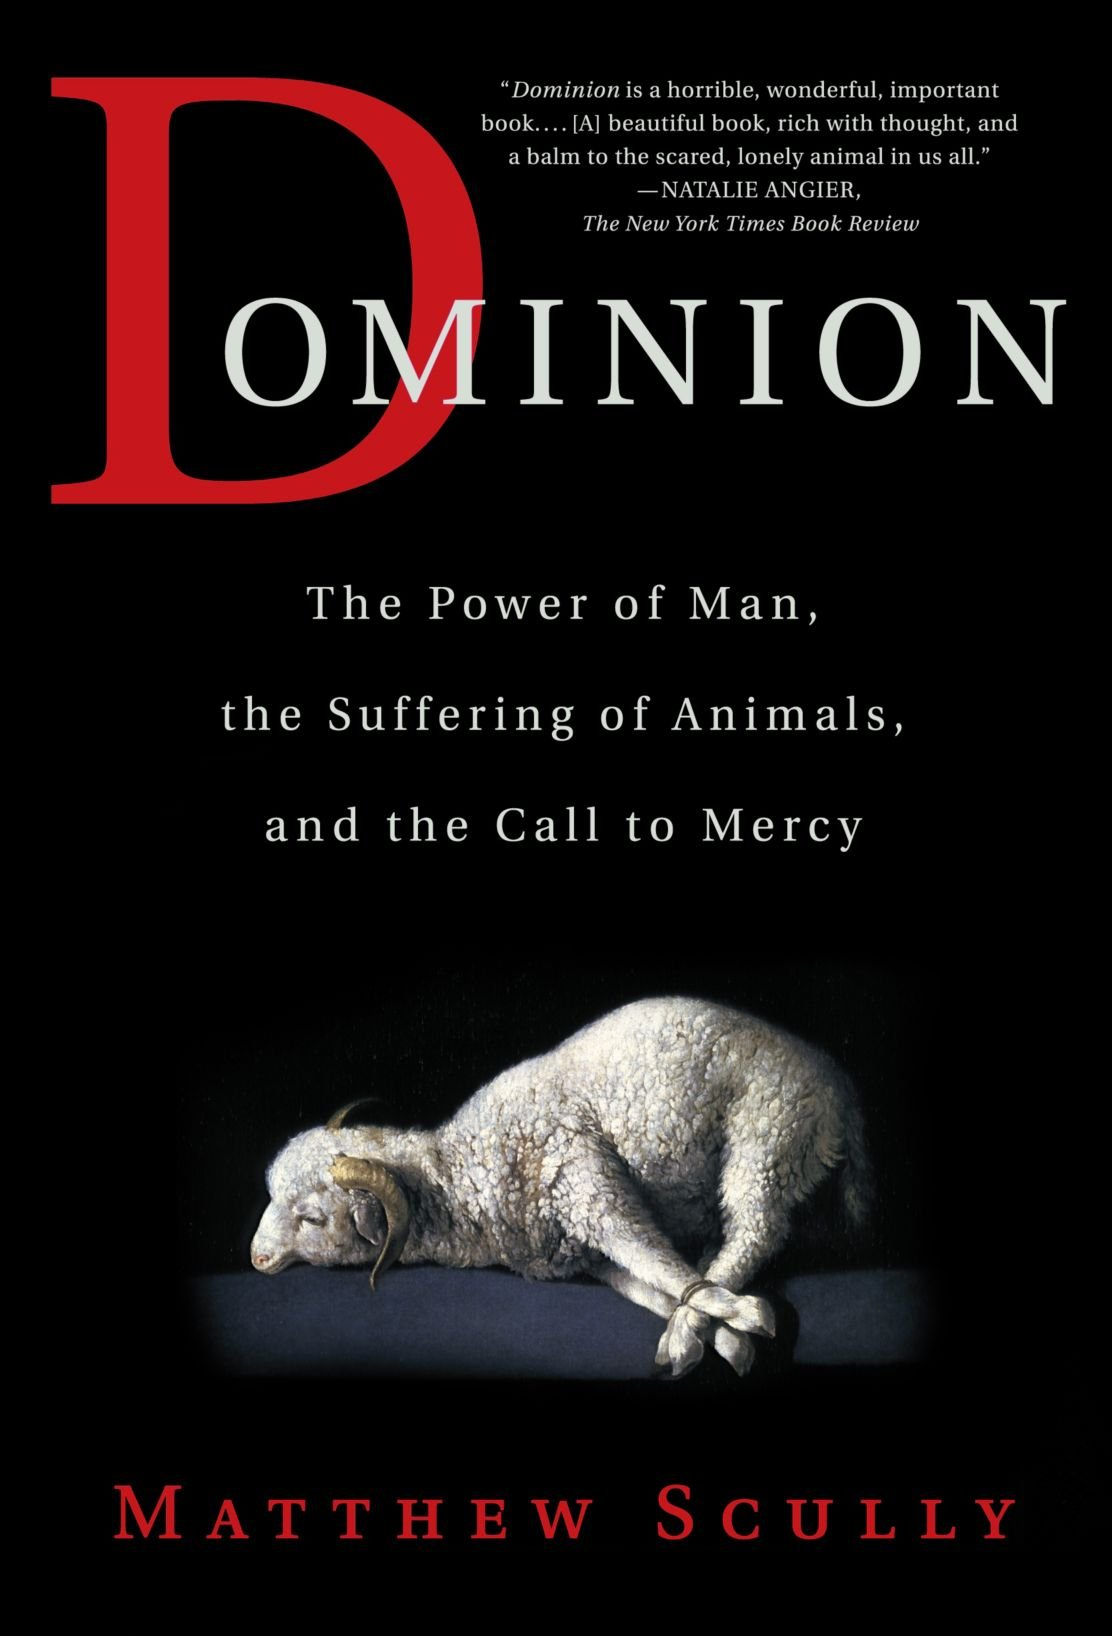 Read Online Dominion: The Power of Man, the Suffering of Animals, and the Call to Mercy PDF